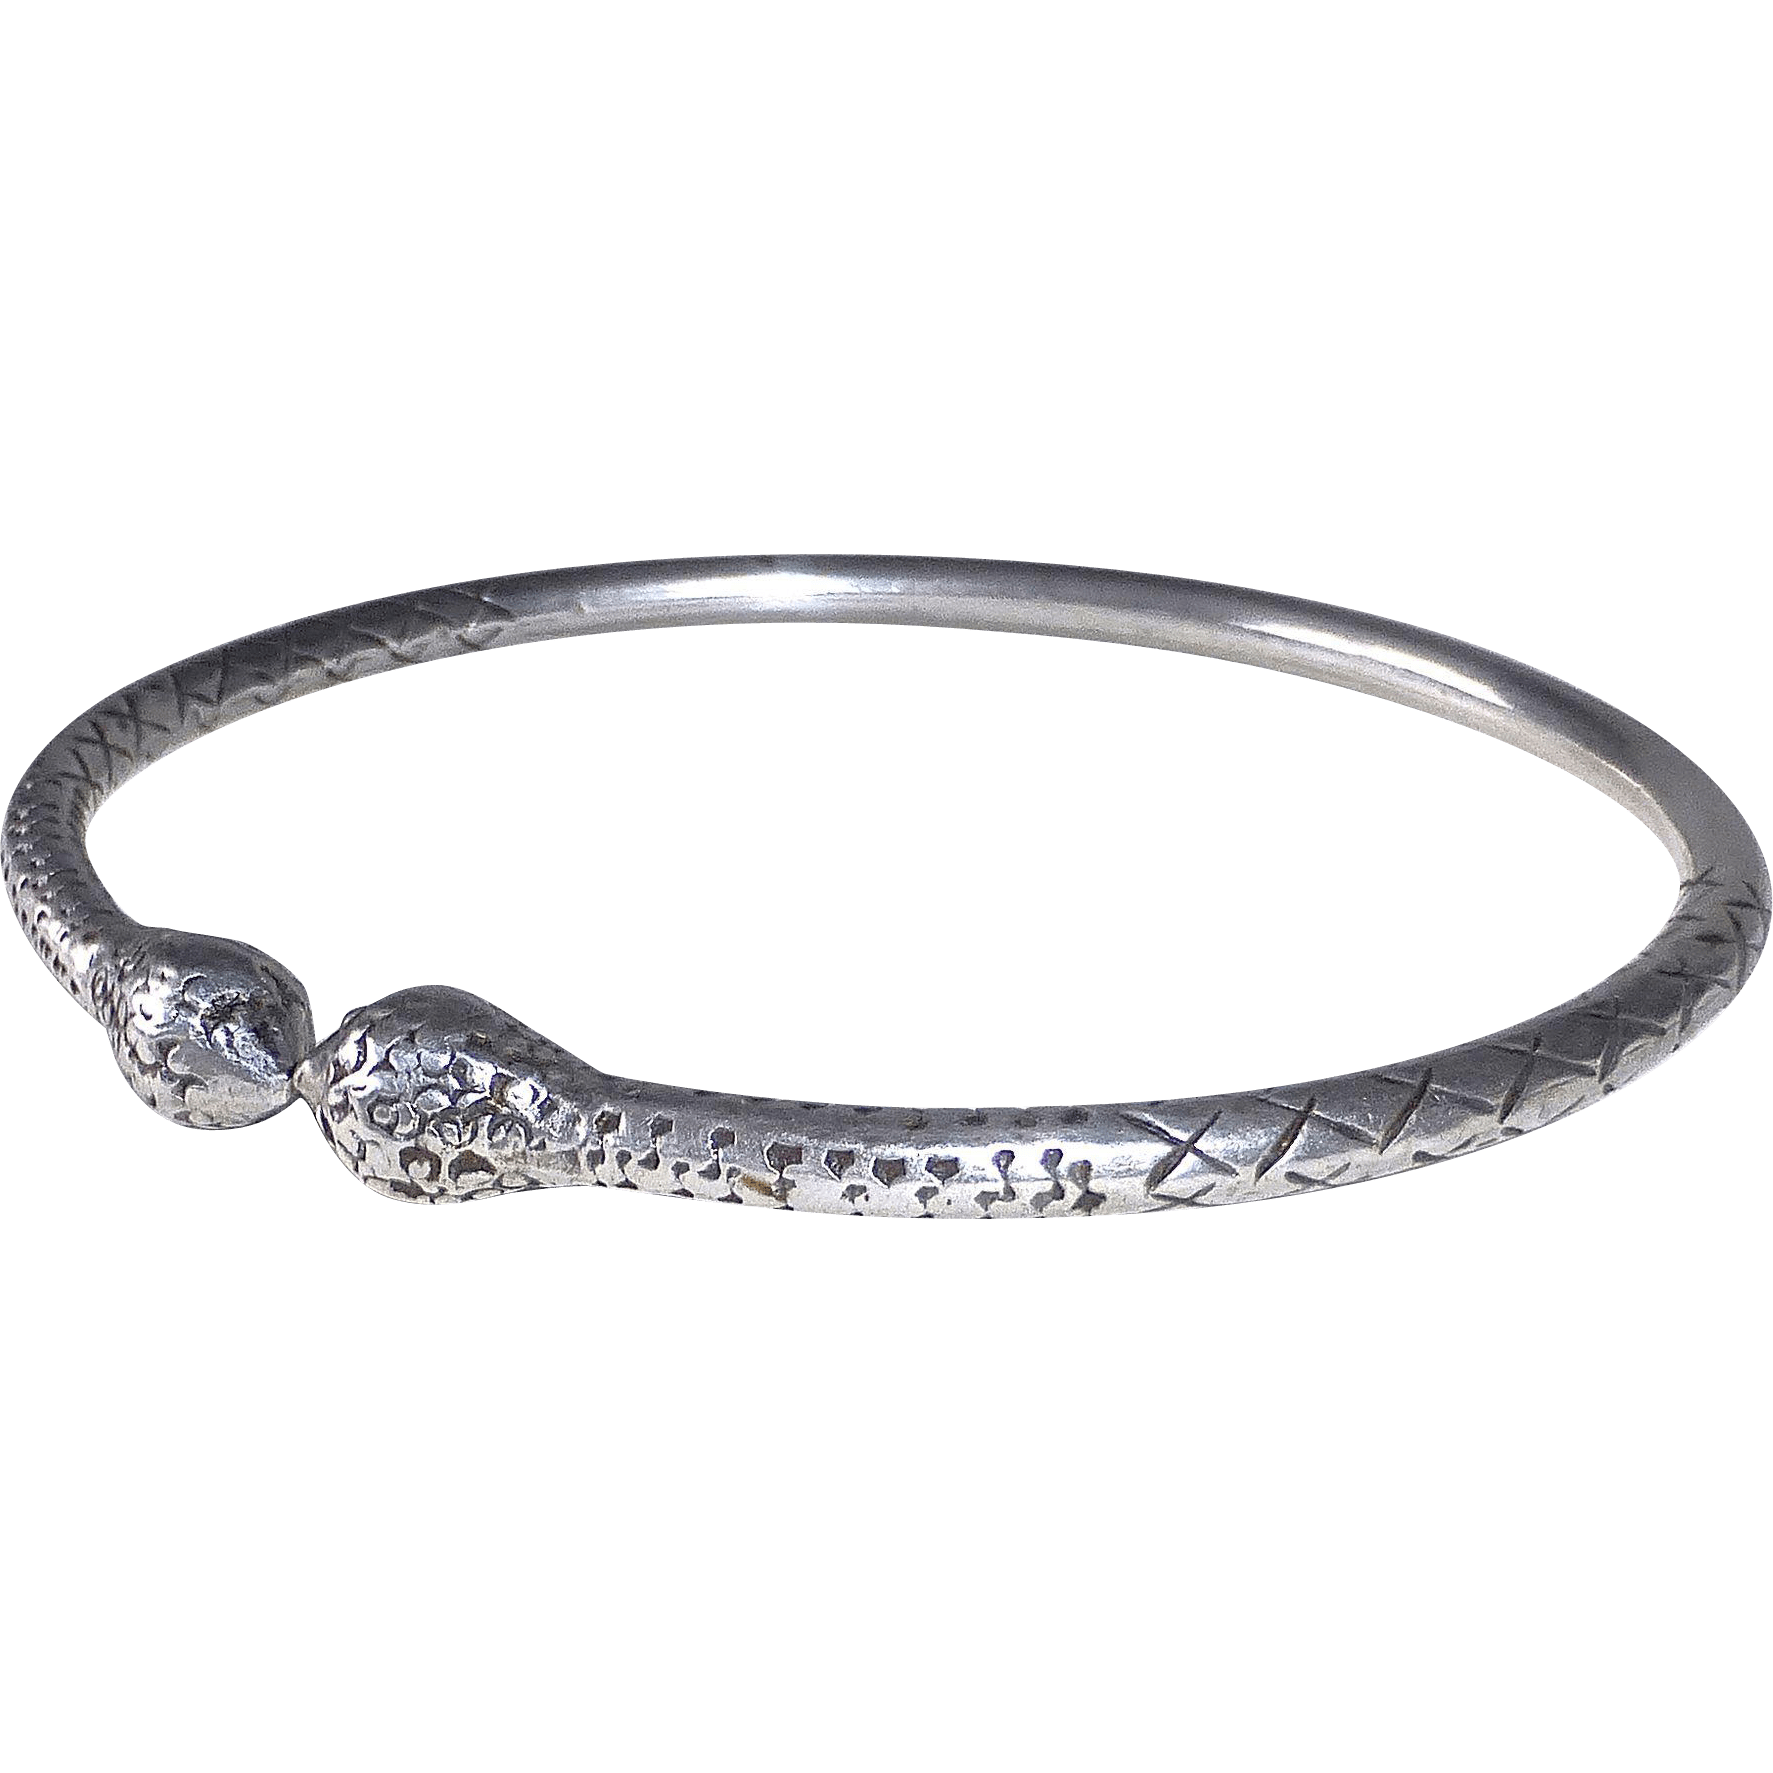 Ethnic Sterling Silver Open Bangle Bracelet From